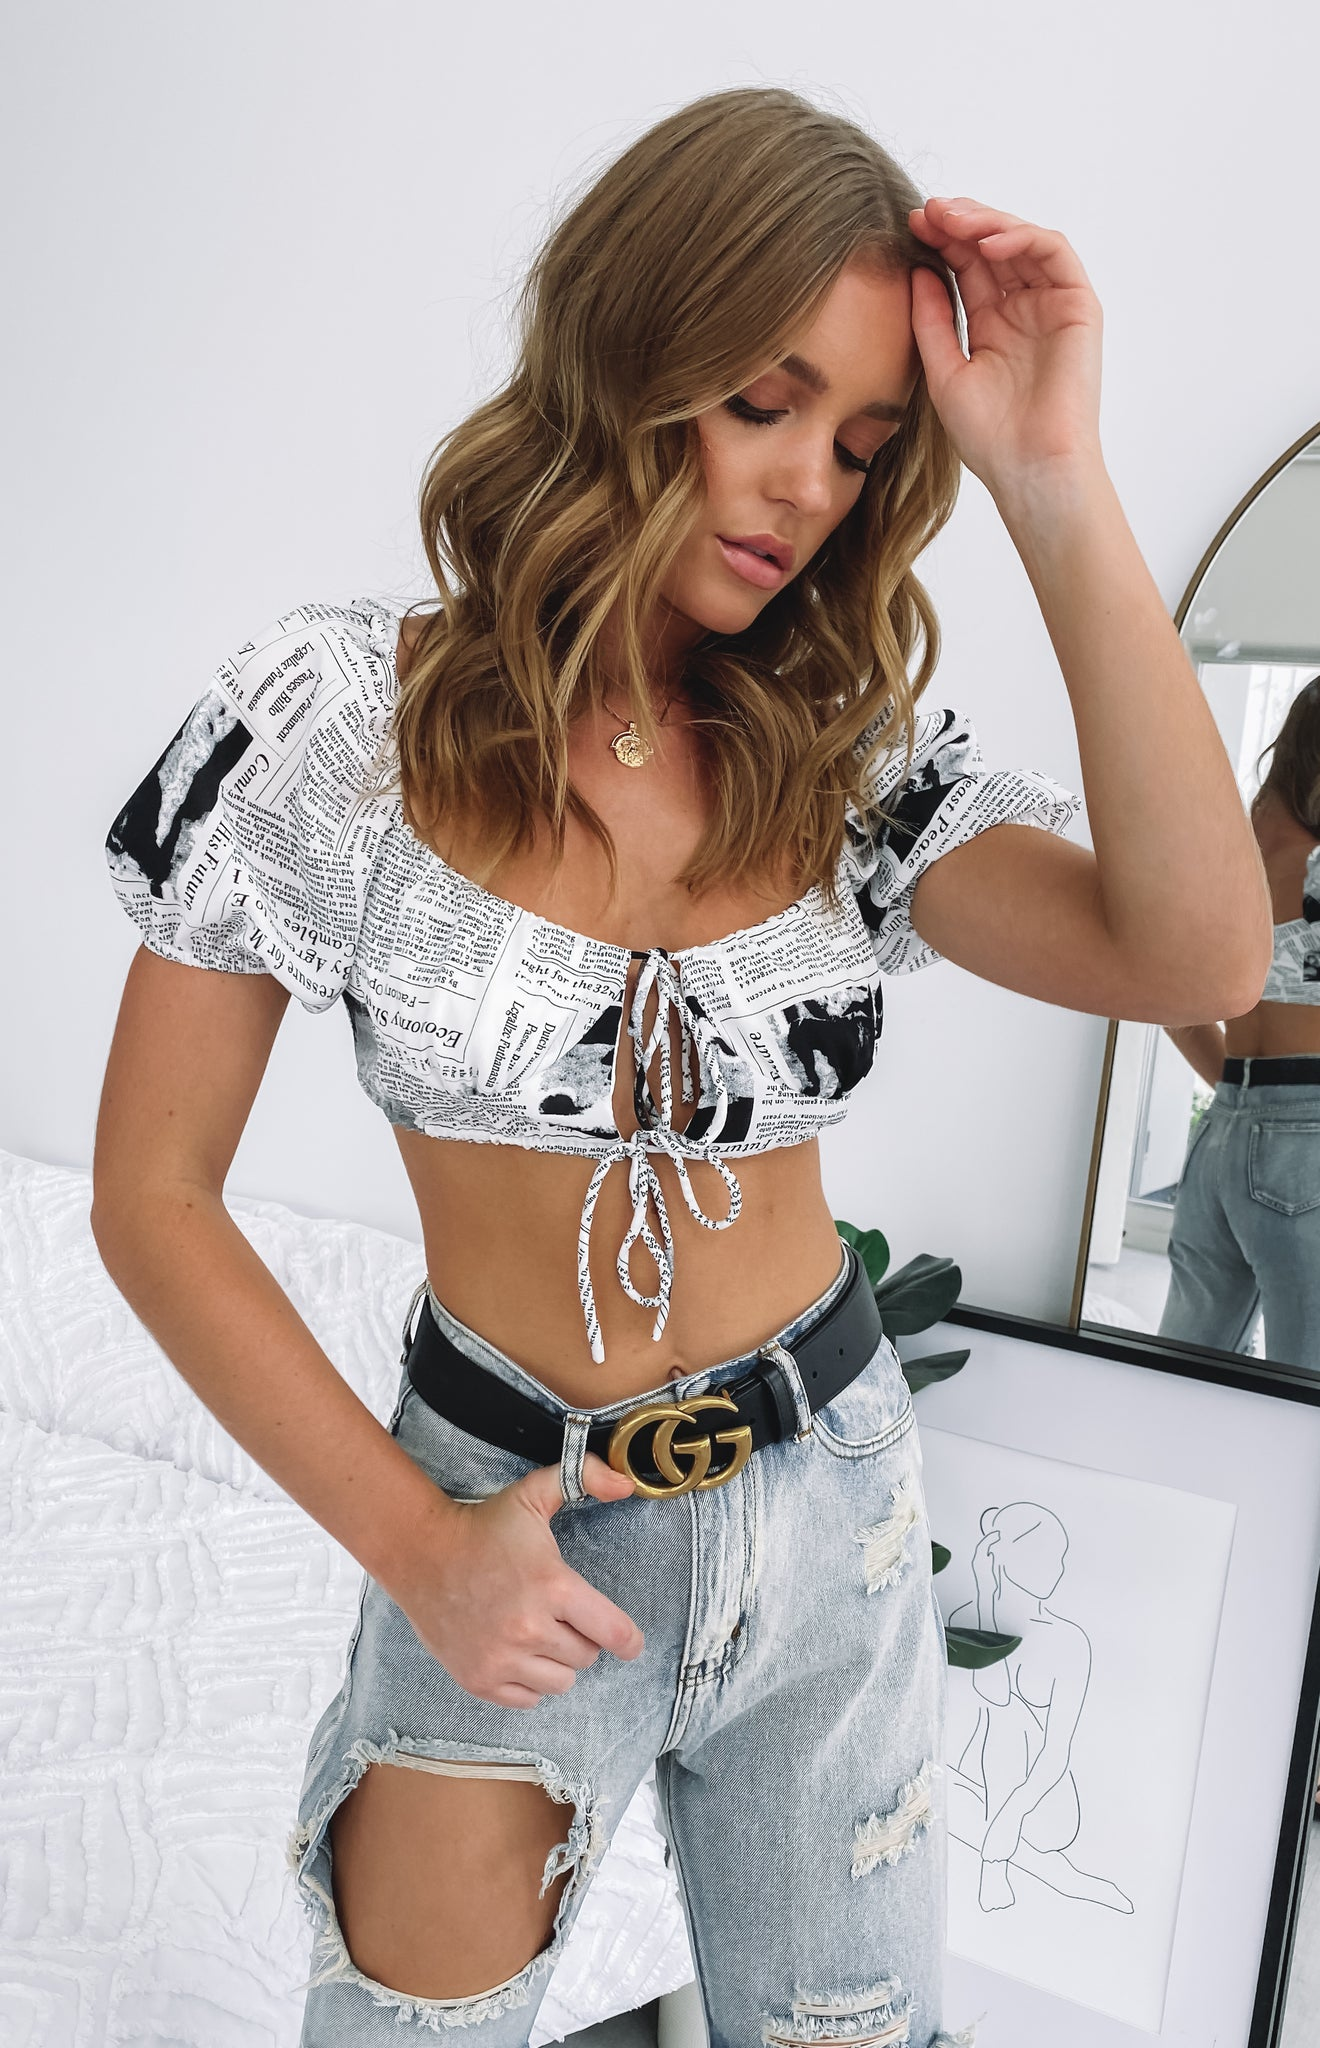 https://files.beginningboutique.com.au/Skipping+Stones+Bustier+Crop+Top+Newspaper.mp4